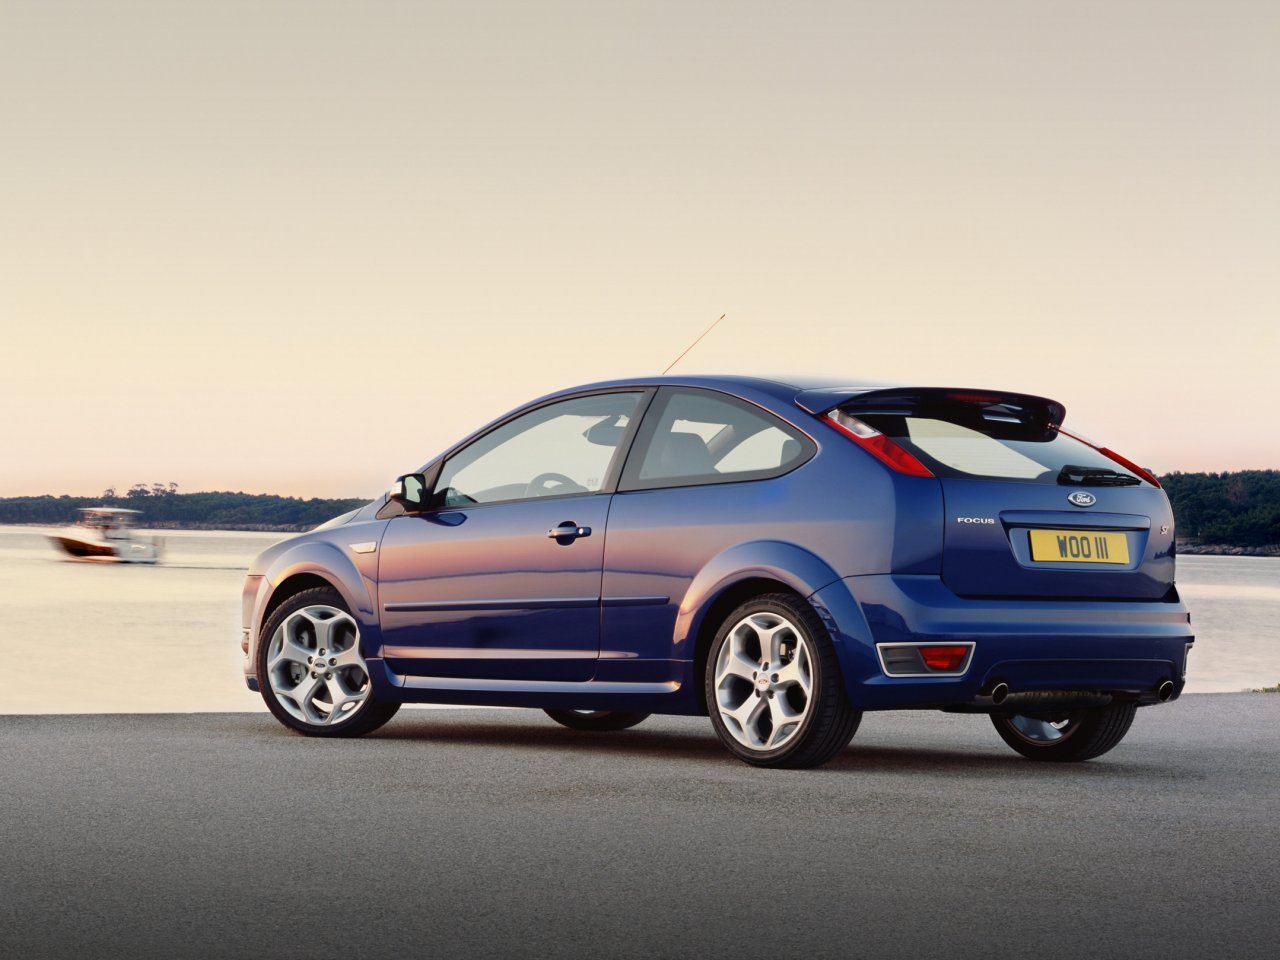 Photoshop of the 08 Focus-ford-focus-st-1.jpg